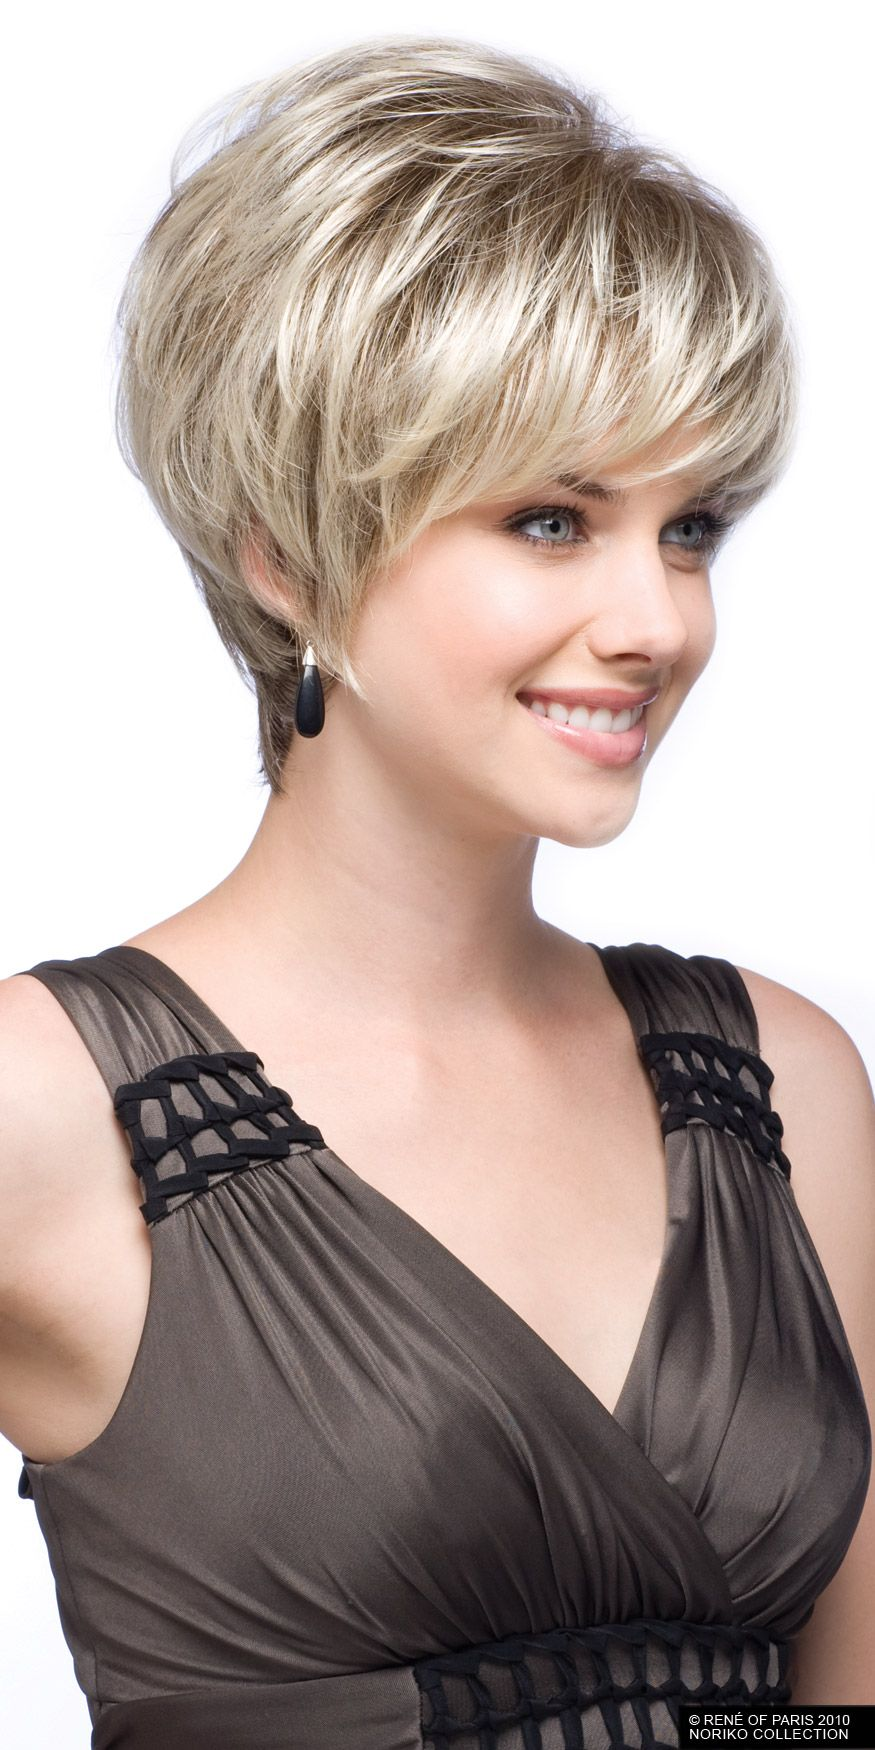 Wedge Hairstyles Womens Wedge Hairstyles  1607Megan2010021300644719  Corte